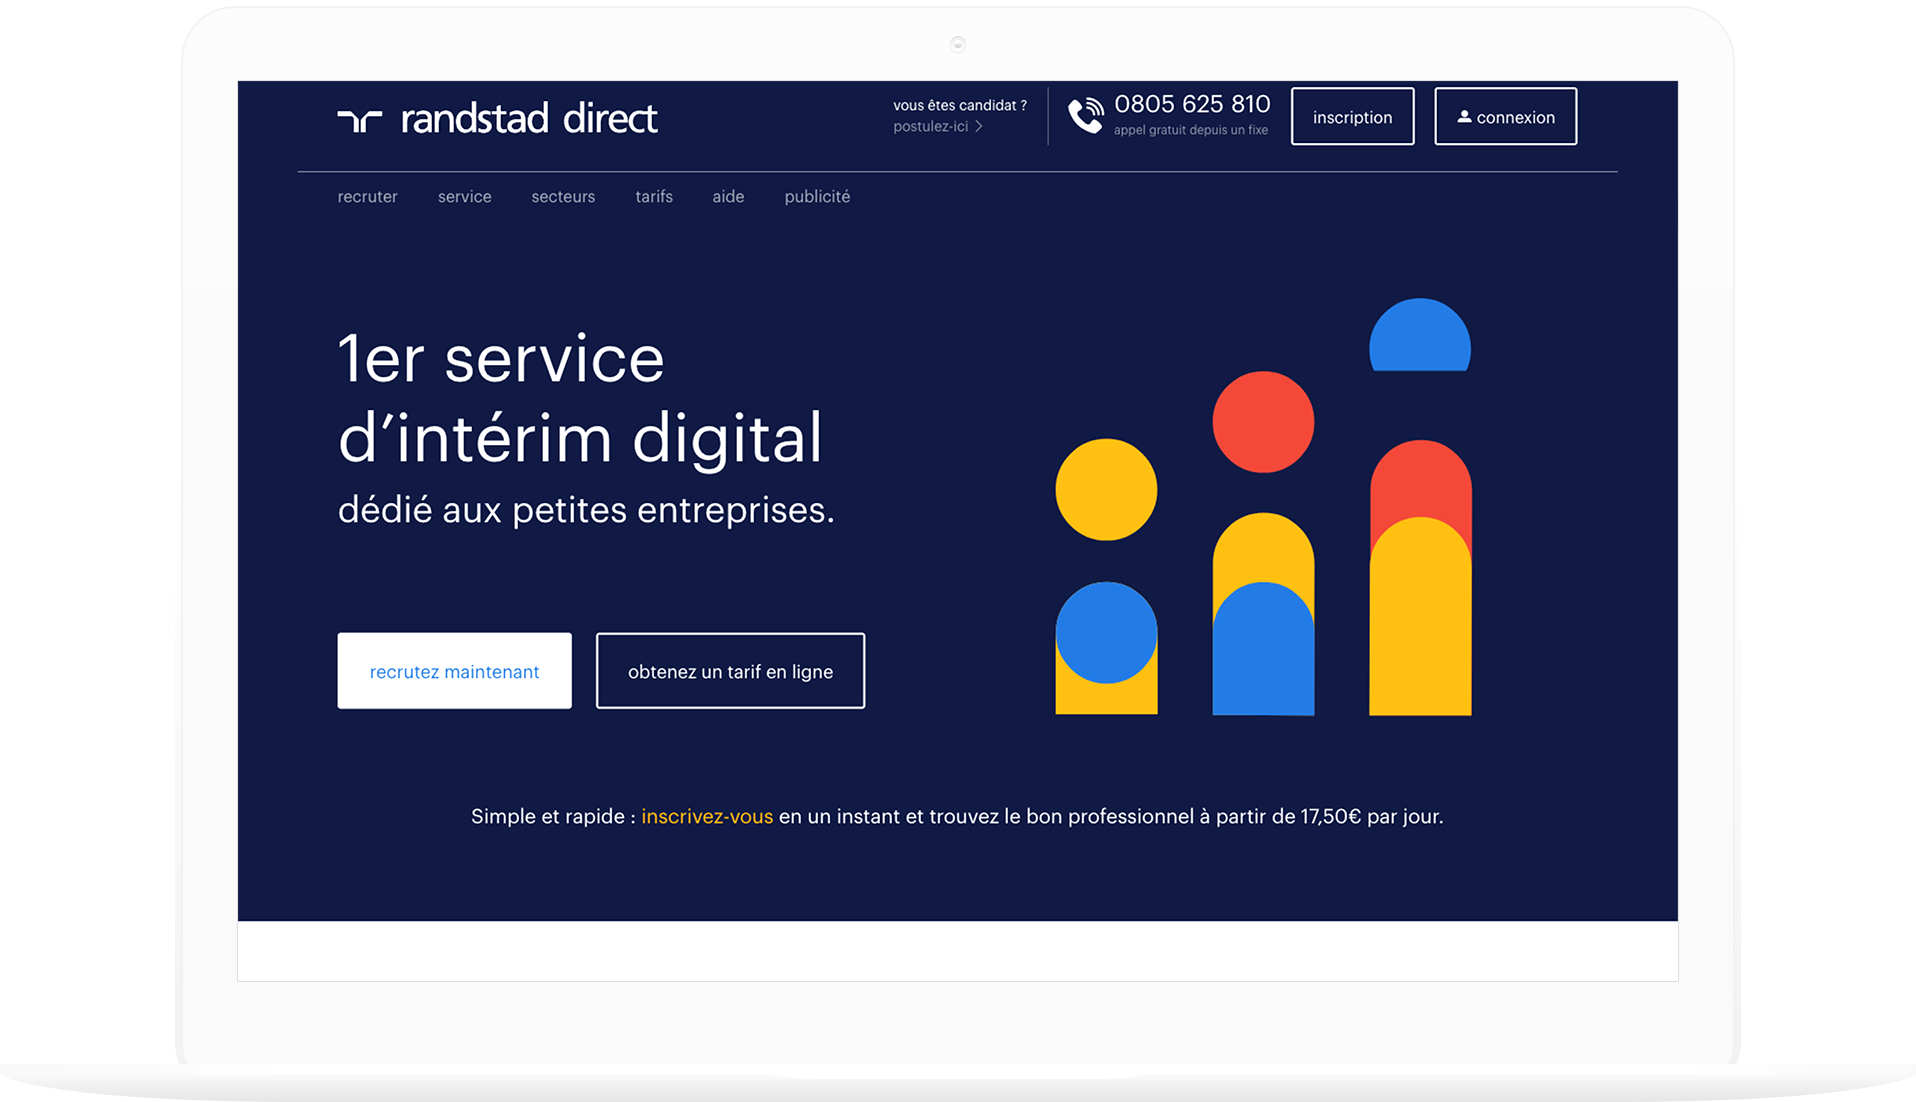 Randstad Direct homepage in French